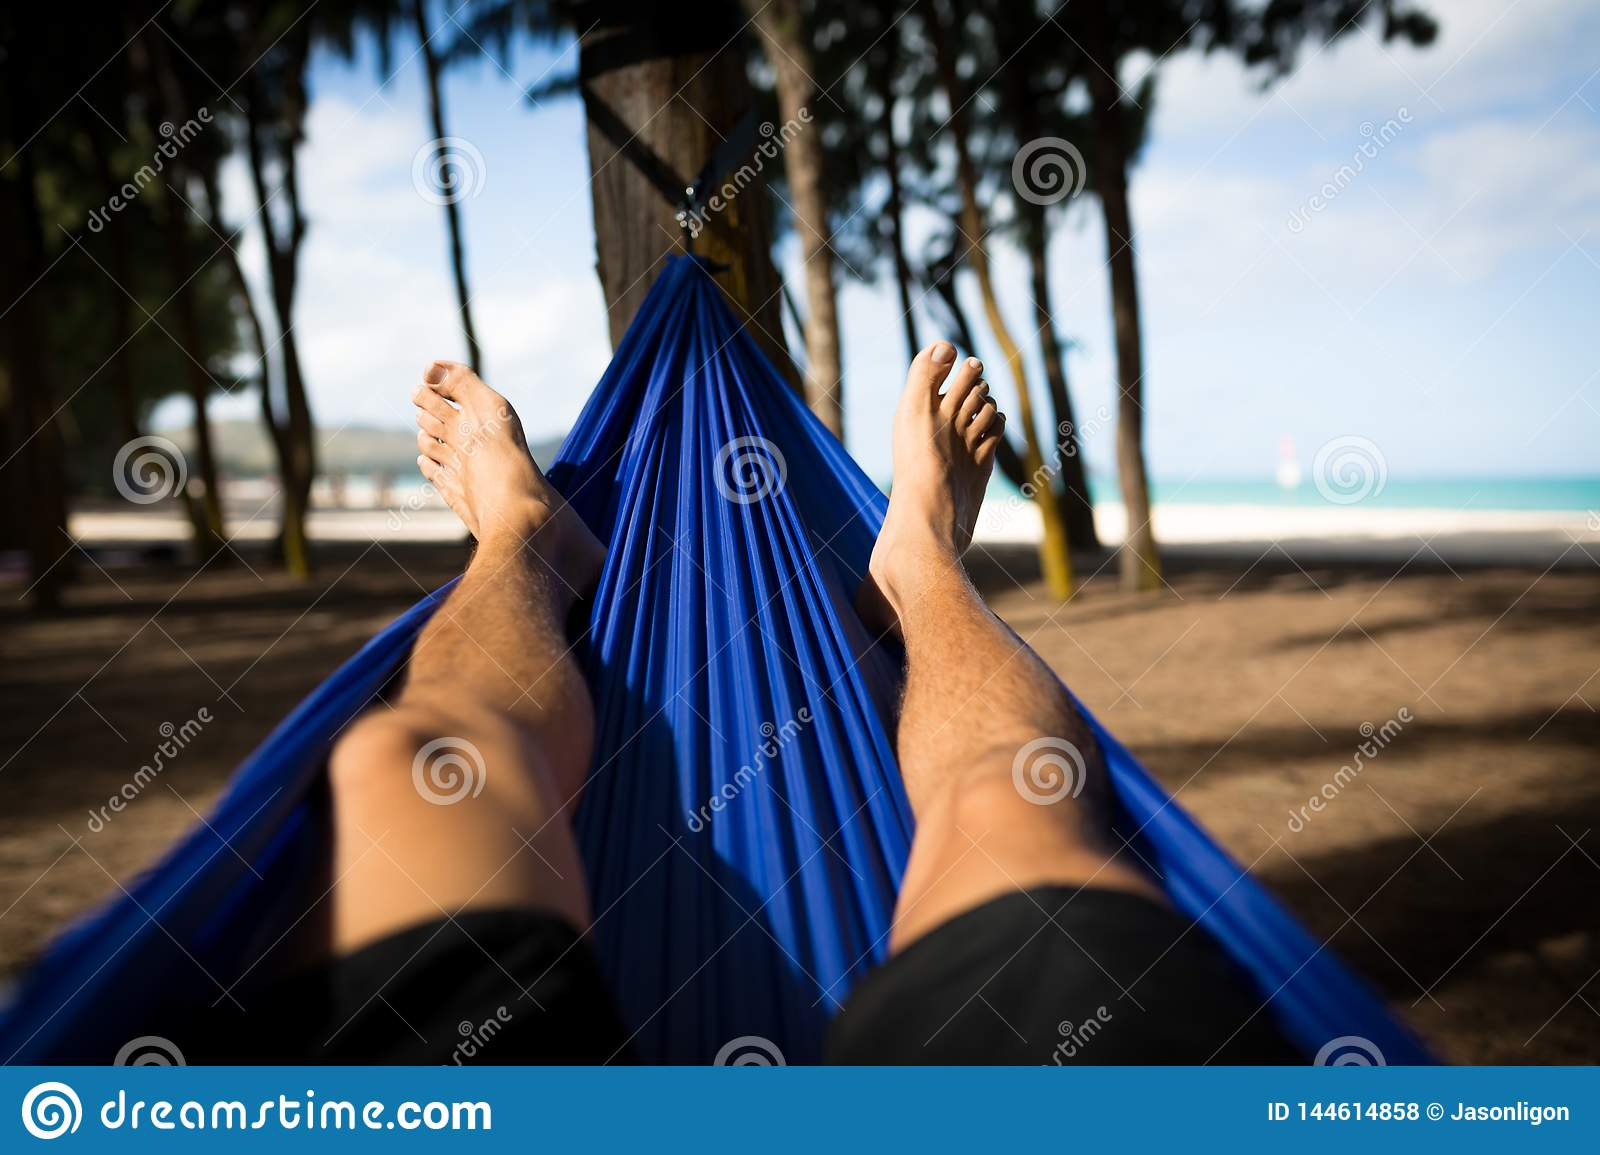 Man in Hammock Faces Beach with Happy Feet